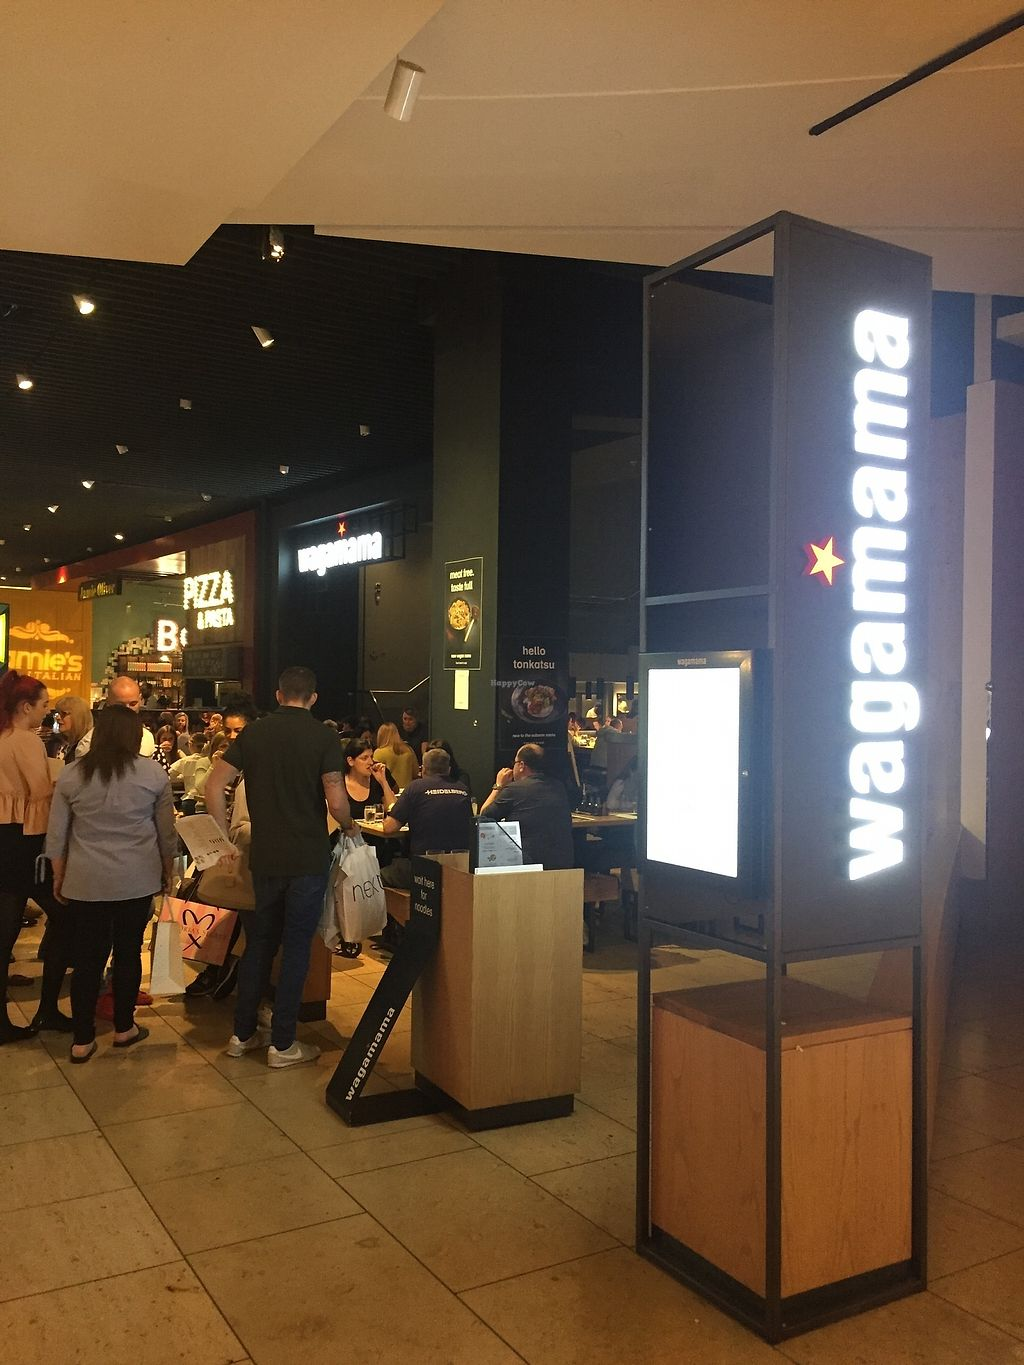 "Photo of Wagamama  by <a href=""/members/profile/TARAMCDONALD"">TARAMCDONALD</a> <br/>Exterior of place <br/> November 14, 2017  - <a href='/contact/abuse/image/94890/325755'>Report</a>"